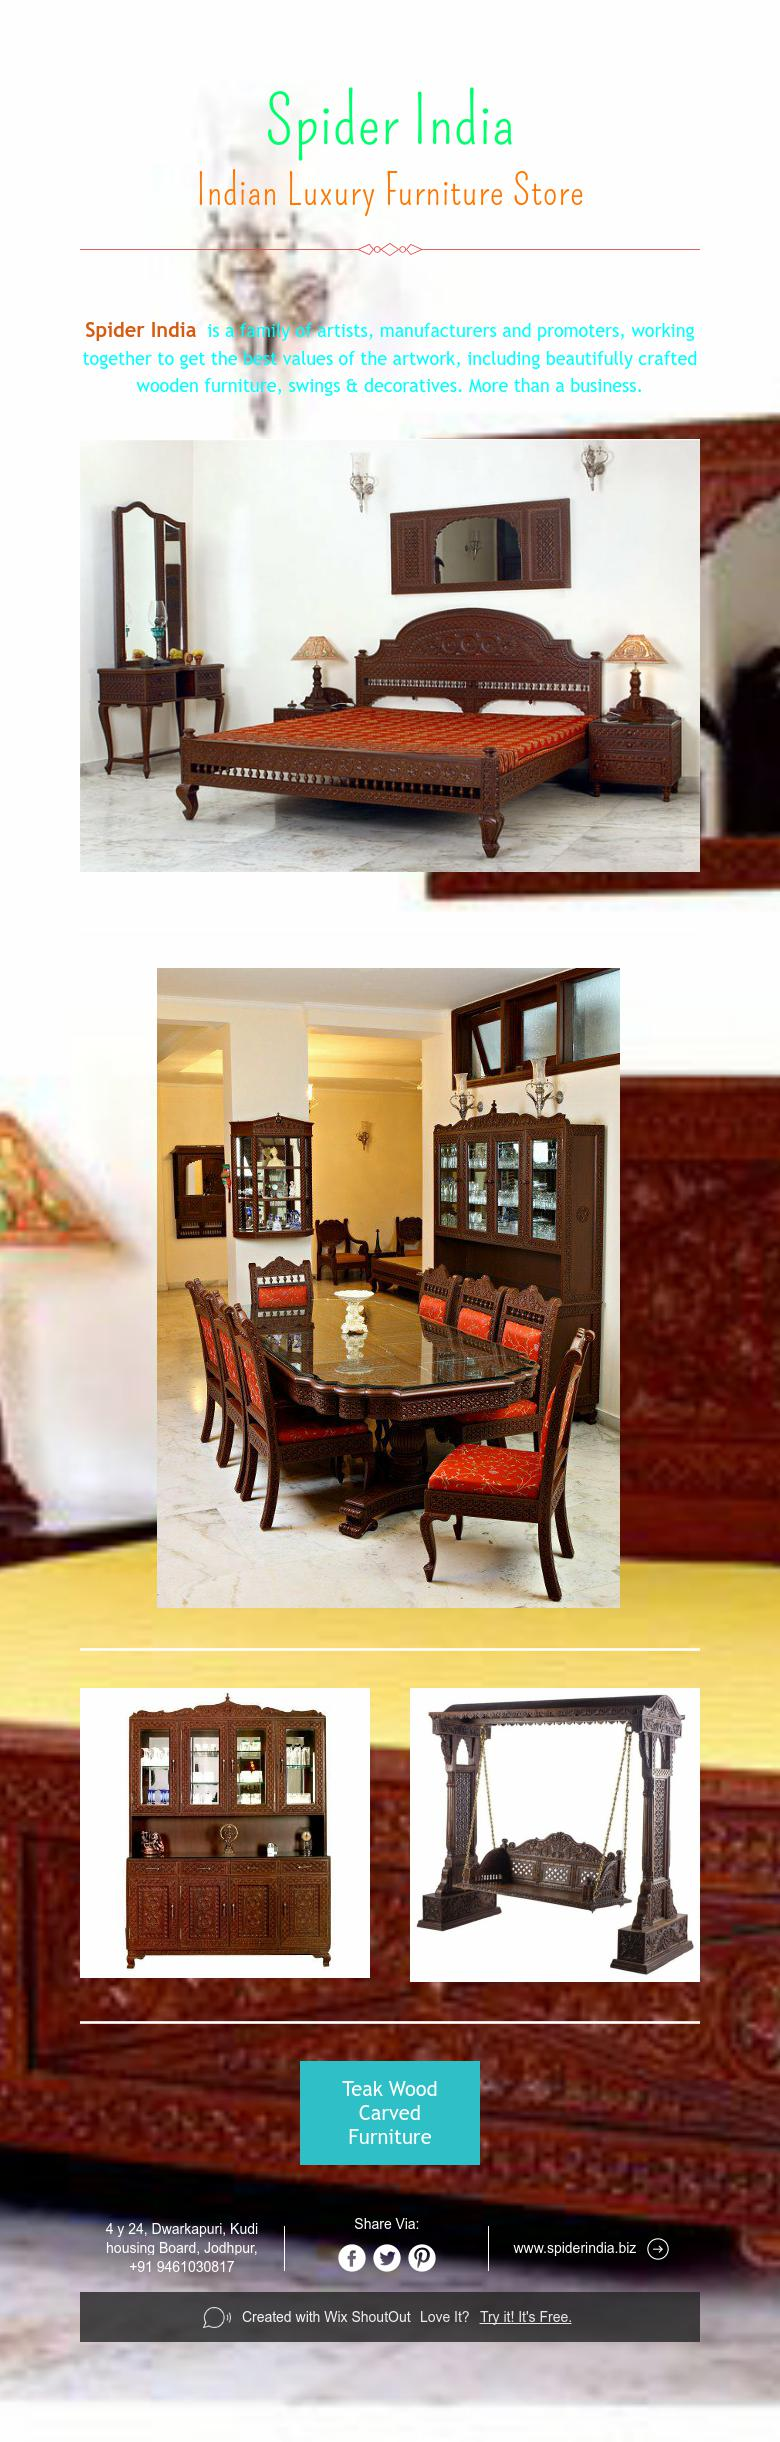 Spider India Indian Luxury Furniture Store Luxury Furniture Stores Carved Furniture Luxury Furniture